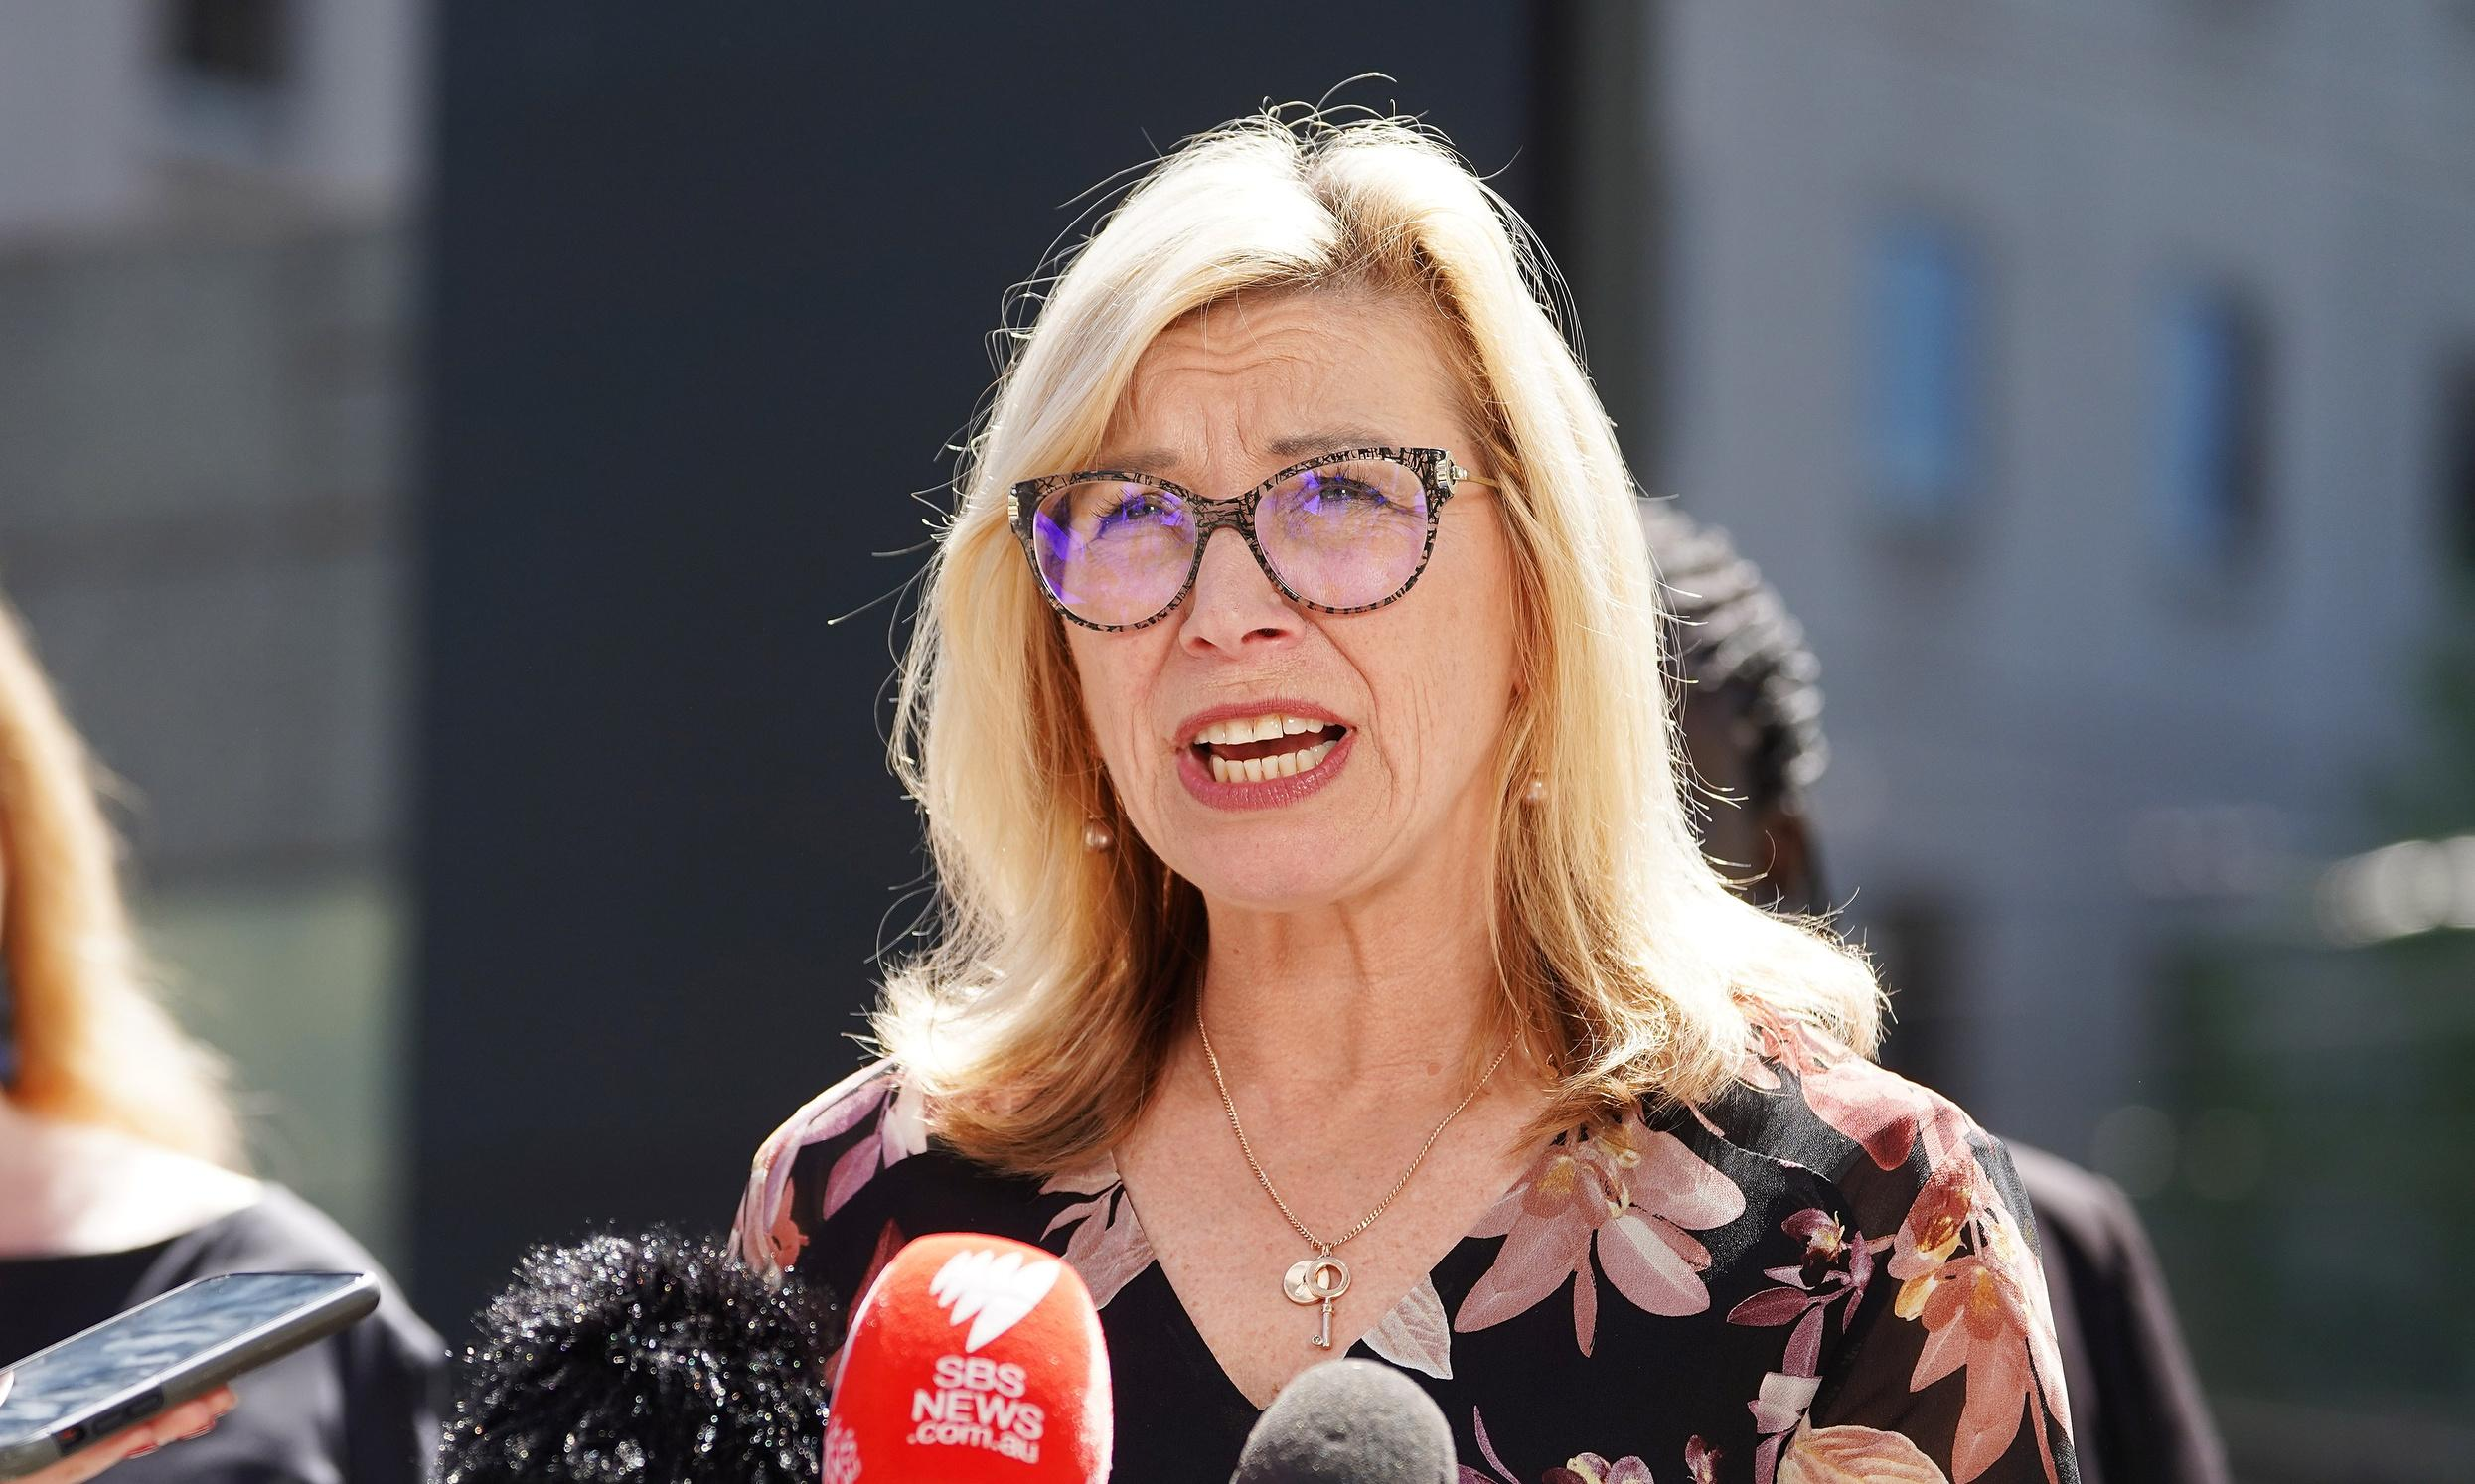 Rosie Batty 'dismayed' by decision to give Bettina Arndt an Australia Day honour